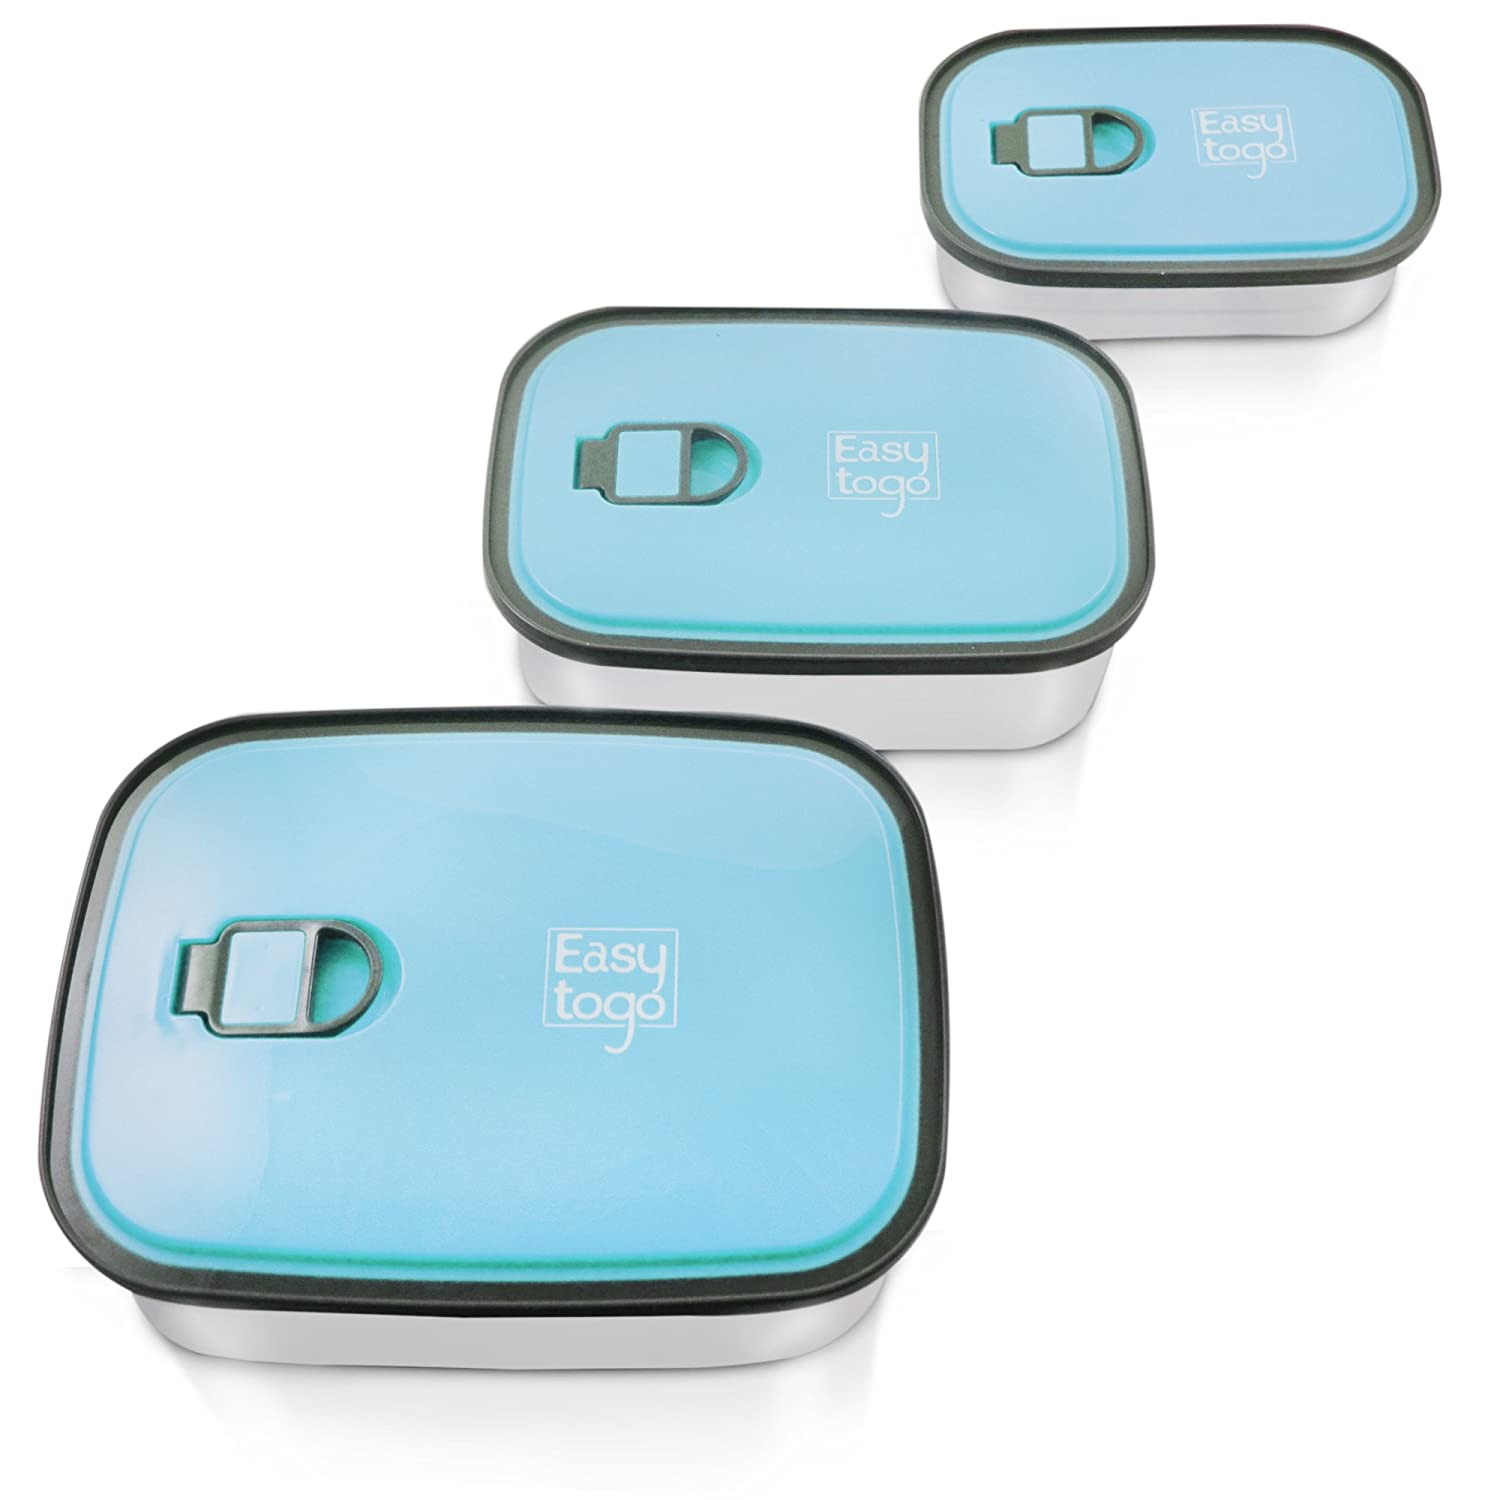 Leak Proof Bento Lunch Box Set – 3 Pack Nesting Stainless Steel Metal Storage Food Containers for Men Women or Kids – BPA Toxin Free for Work or Healthy School Lunches - Durable Sandwich Box